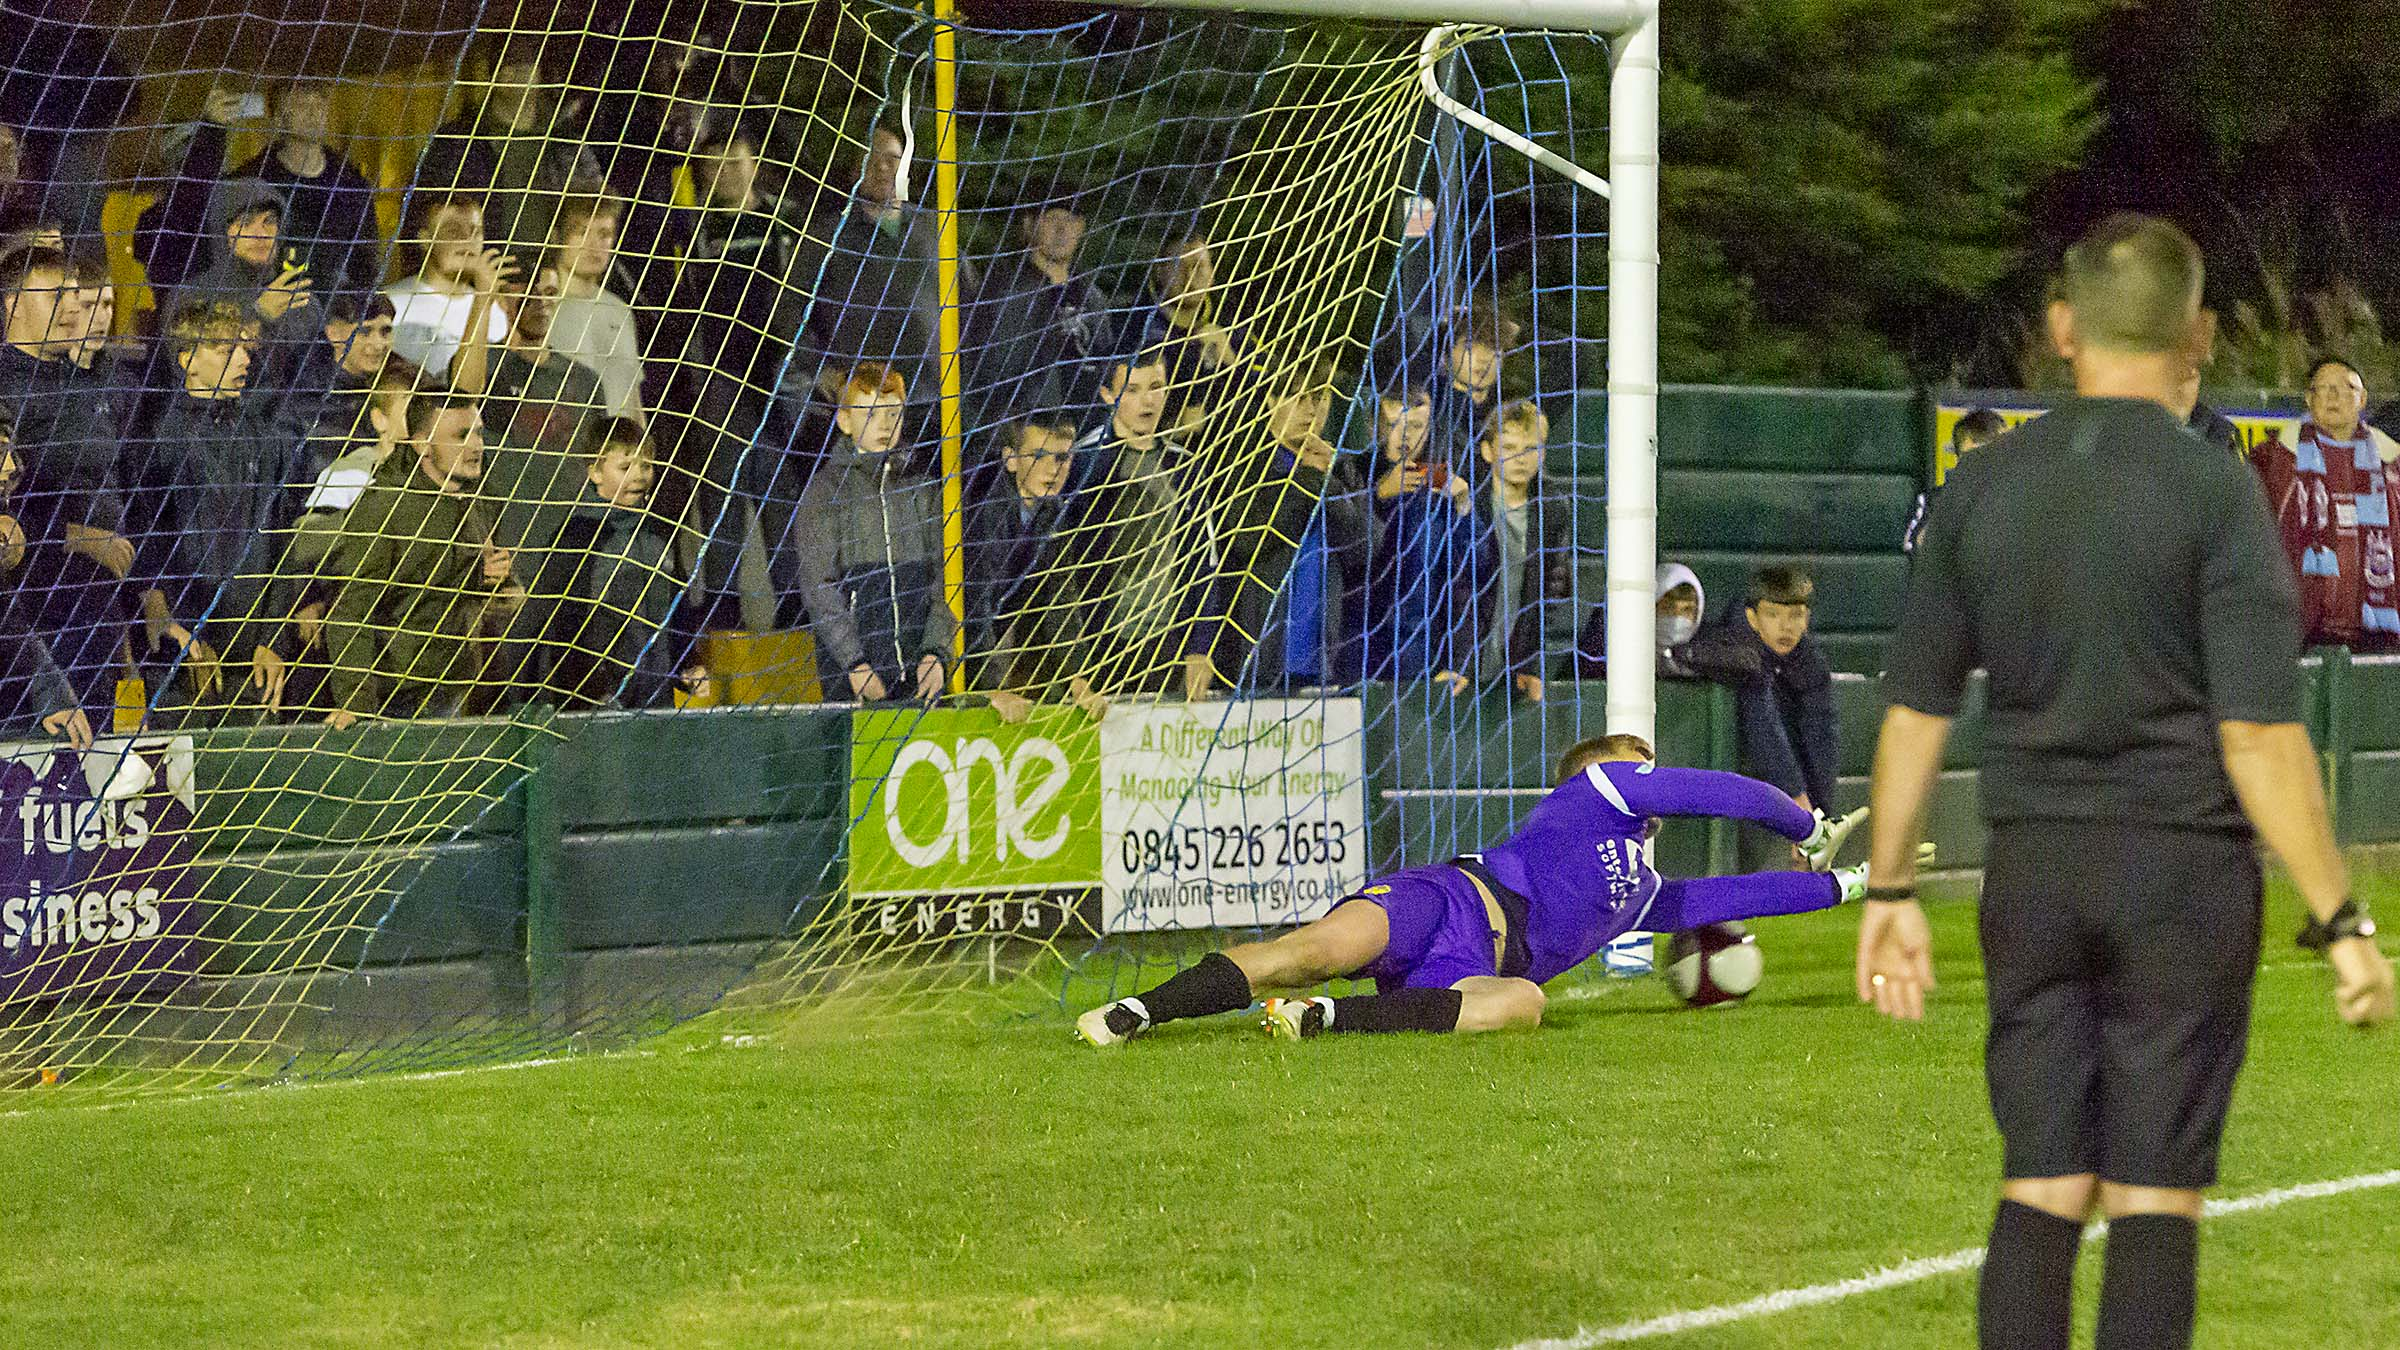 Police investigate fan incident during Warrington Town FA Cup tie